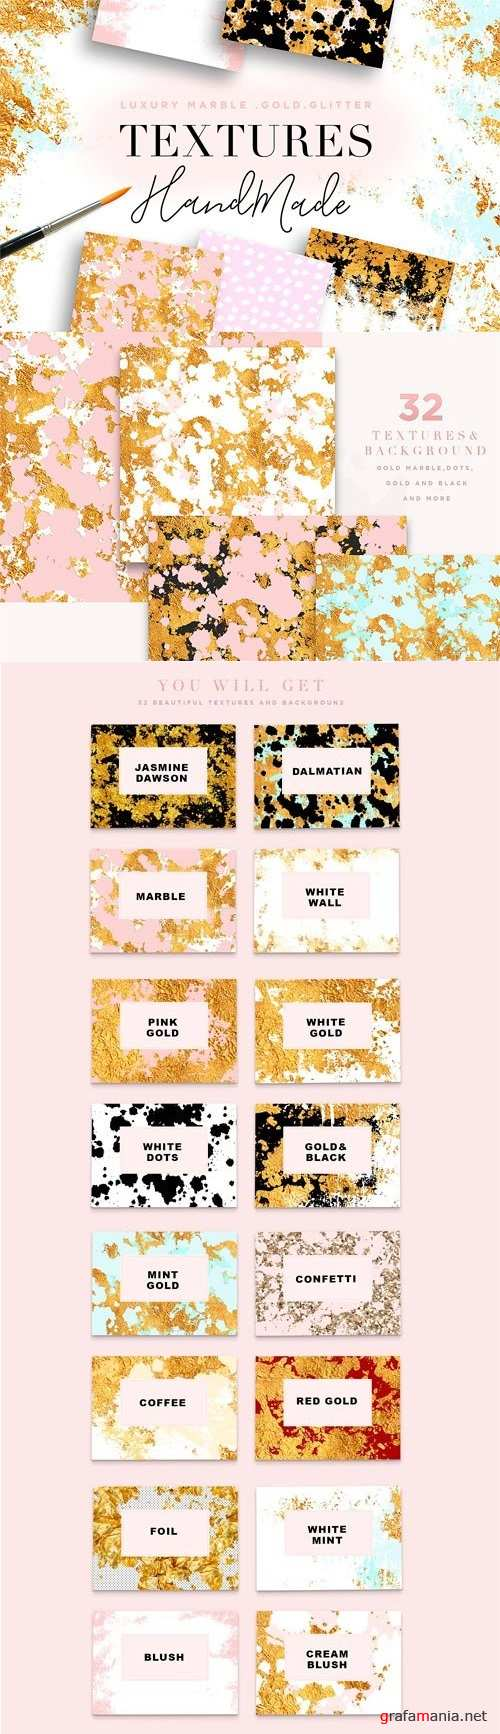 Luxury Marble & Gold Textures - 2037495